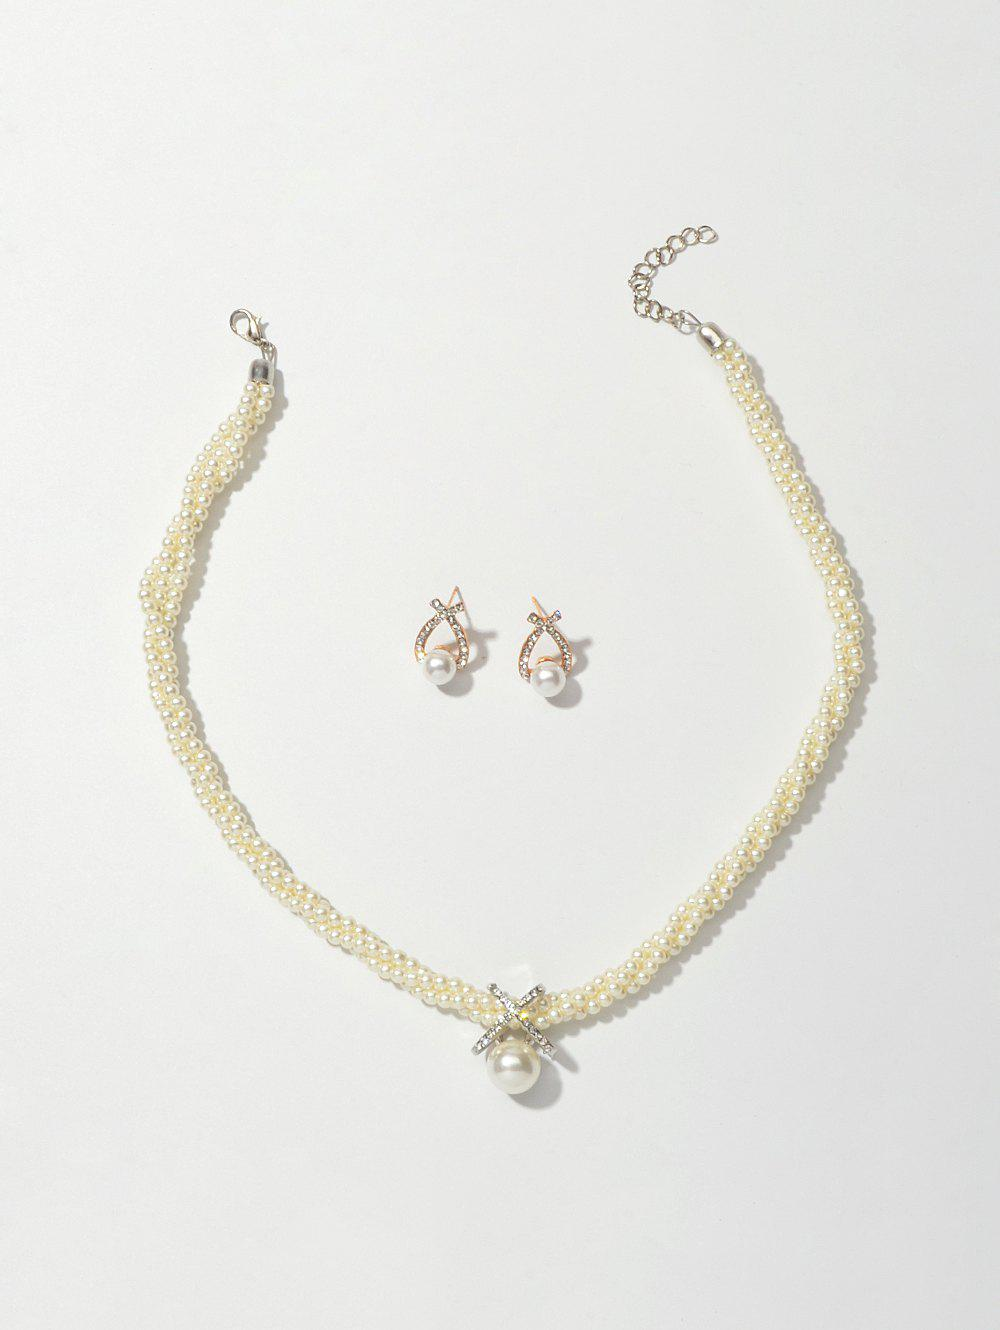 Rhinestone Artificial Pearl Necklace Stud Earrings Set - GOLD